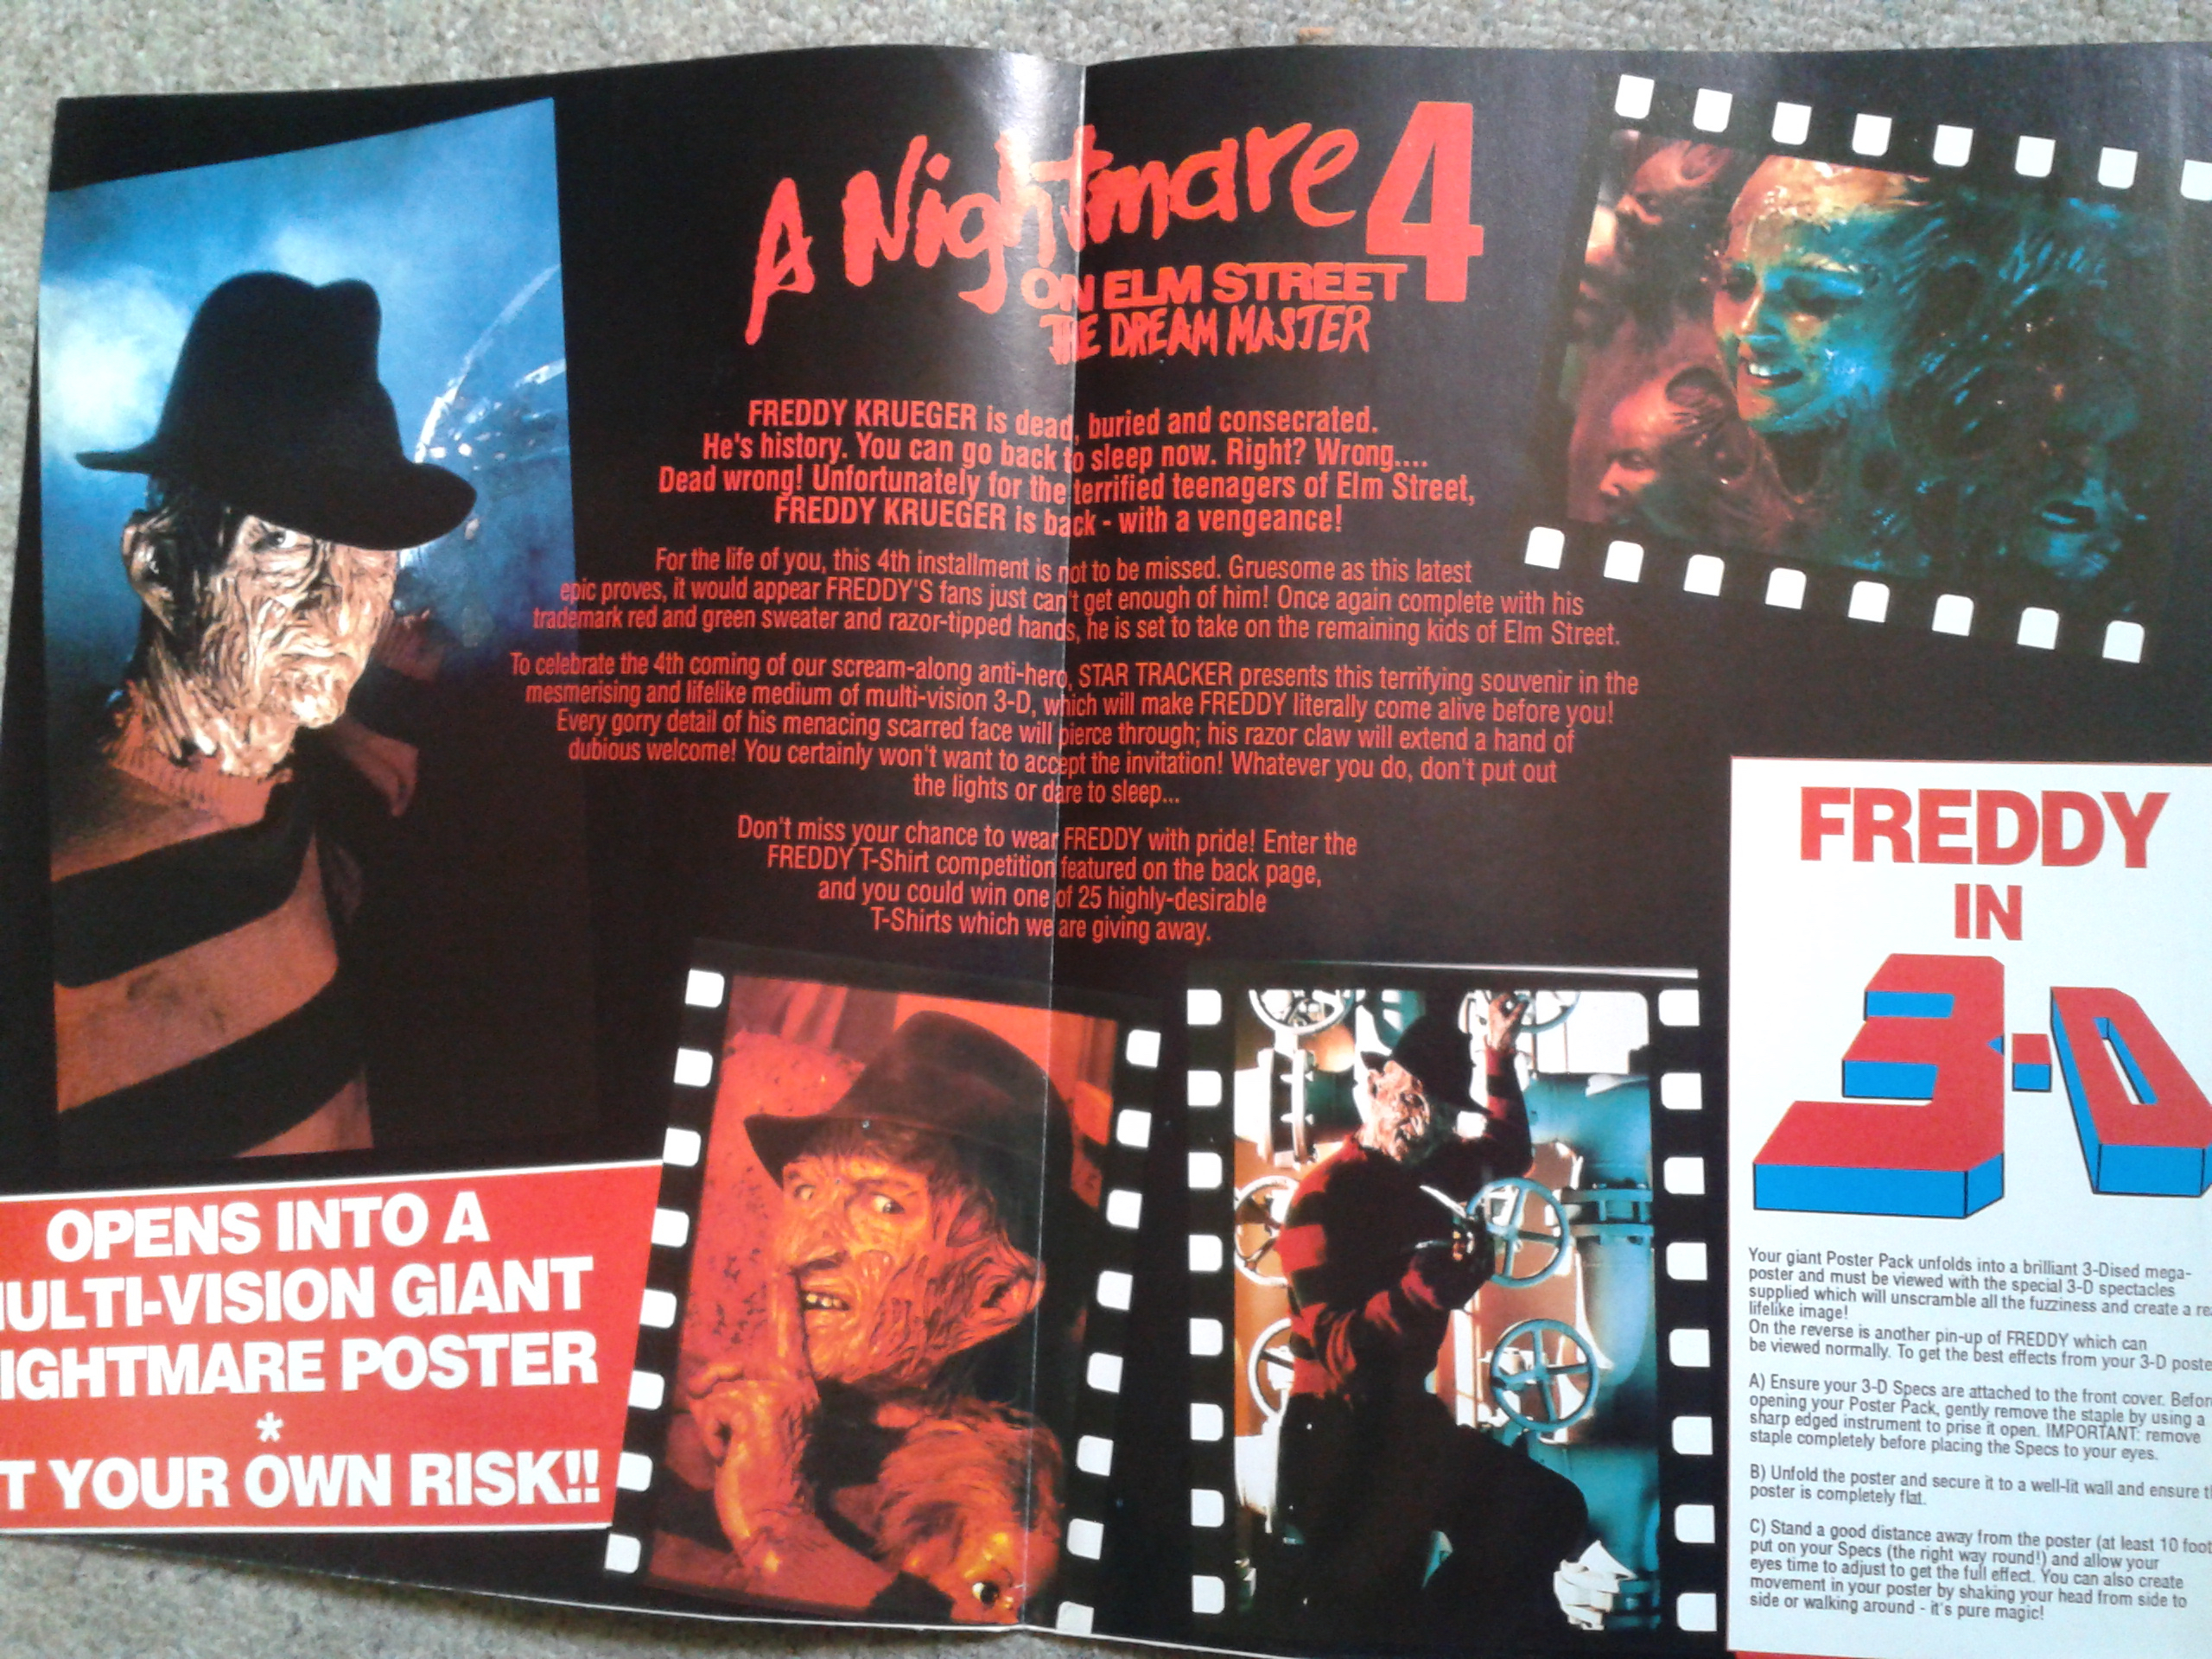 Freddy 3D Poster Magazine - Interior Pages